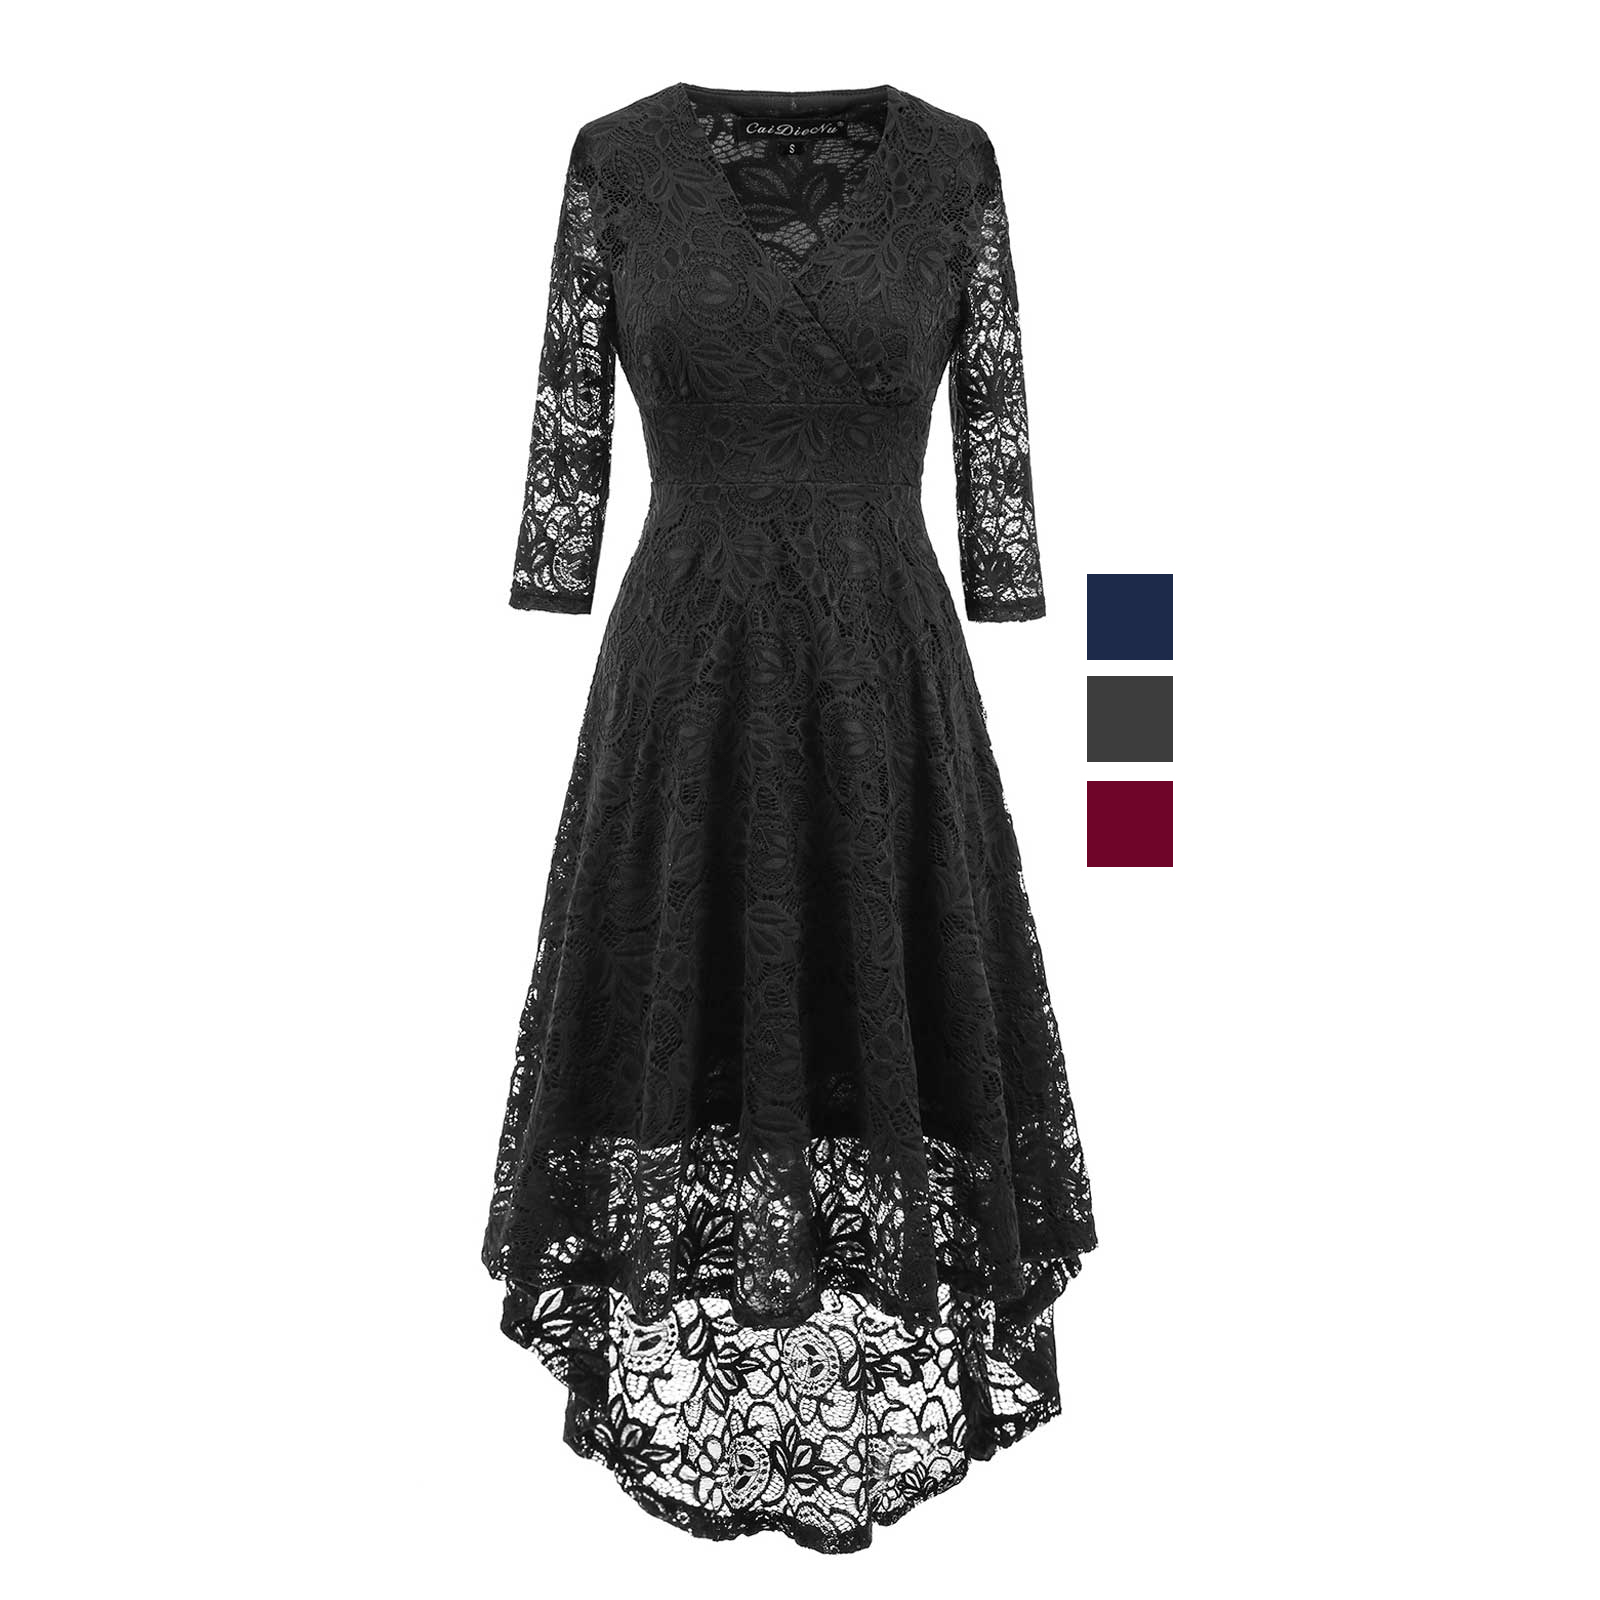 d00b78fc94d7 Women Vintage Floral Lace V Neck Fit and Flare A Line High Low Dress ...